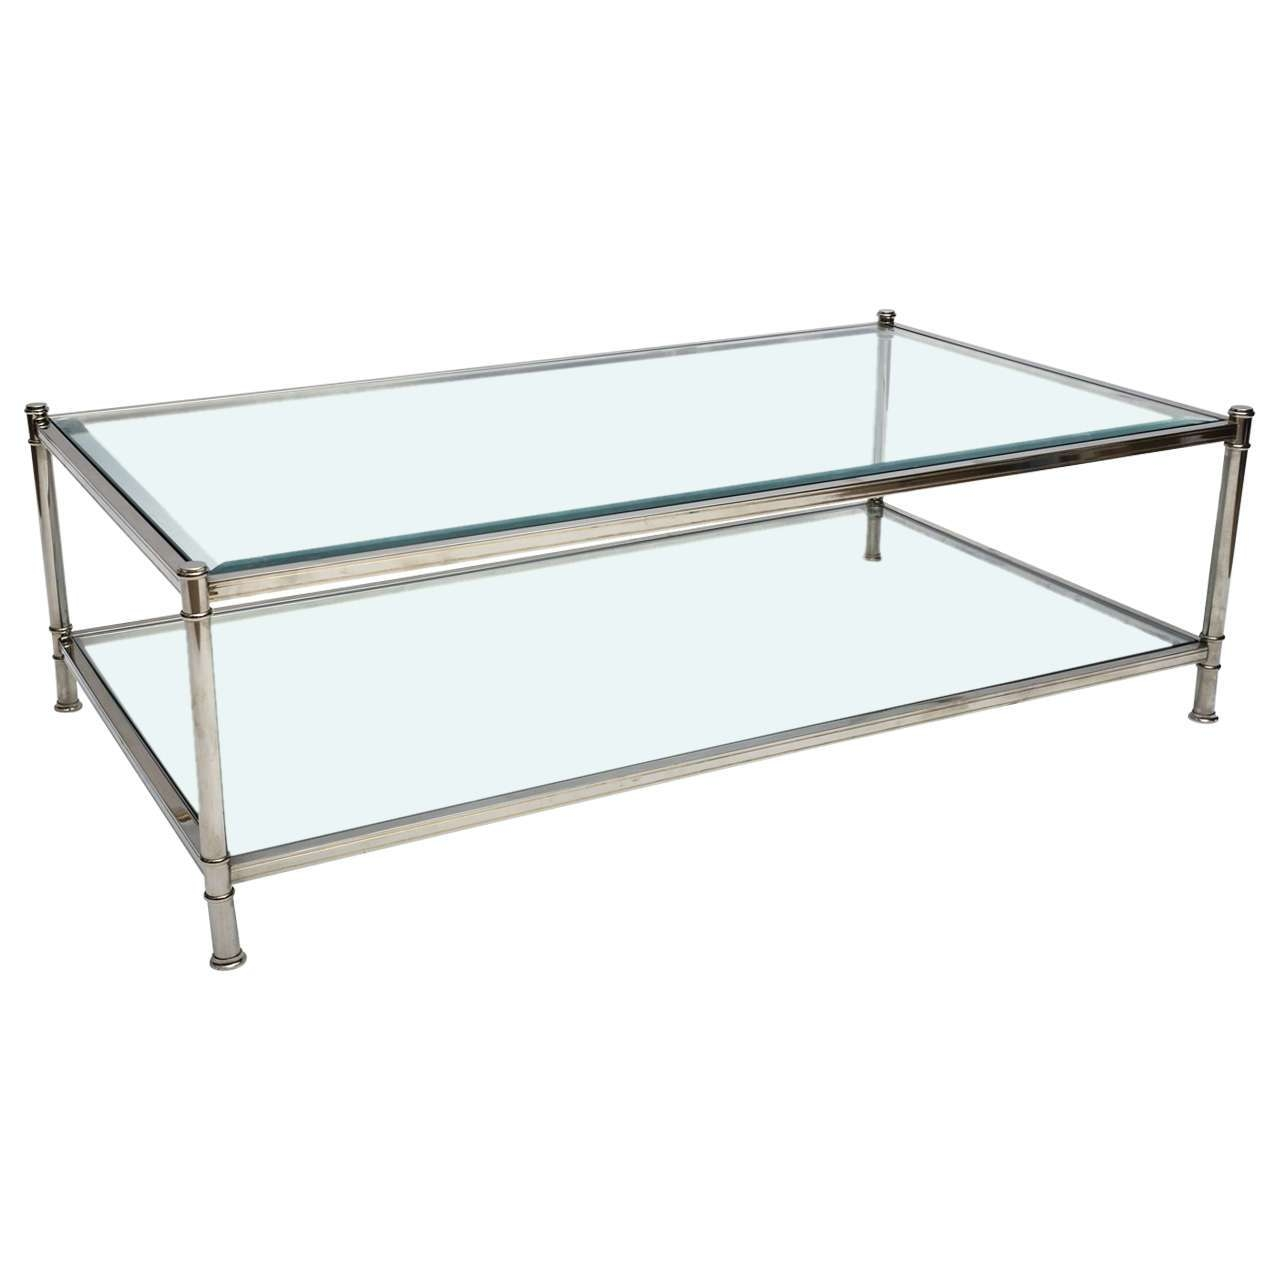 Coffee Tables Ideas: Cool Two Tier Glass Coffee Table Two Tier Pertaining To Well Known Steel And Glass Coffee Tables (View 7 of 20)